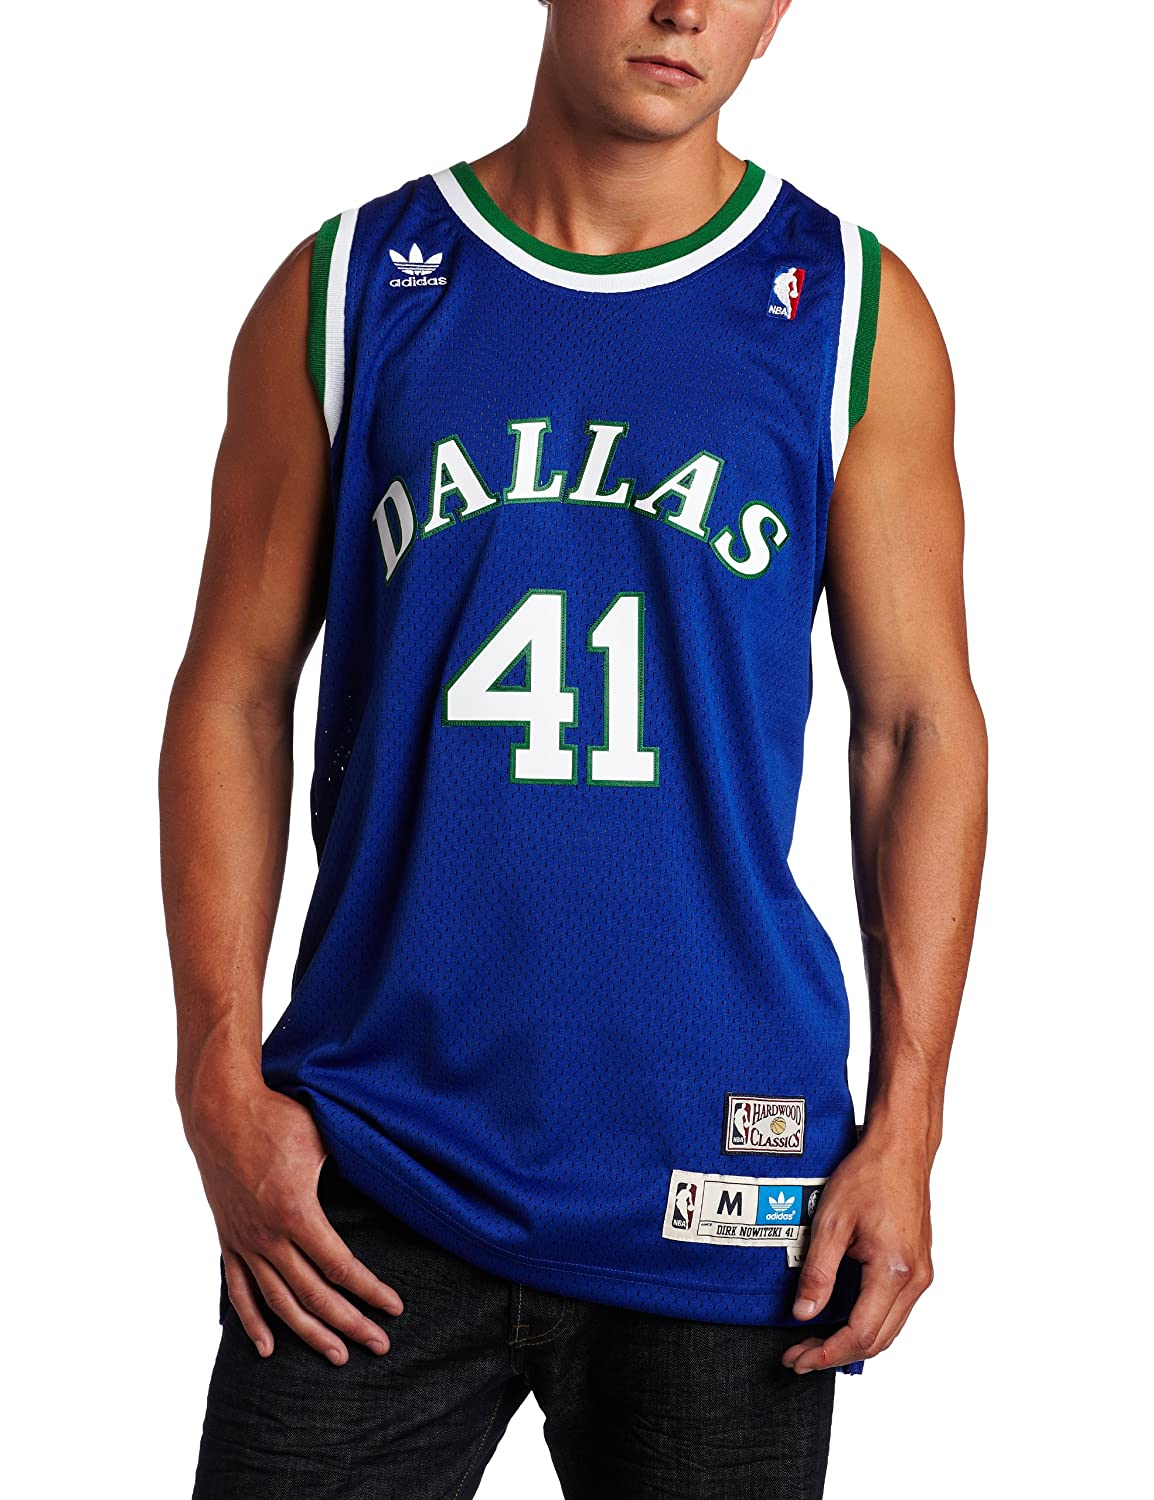 low priced 43fed 1a90a Amazon.com : Dirk Nowitzki Jersey: adidas Blue Throwback ...